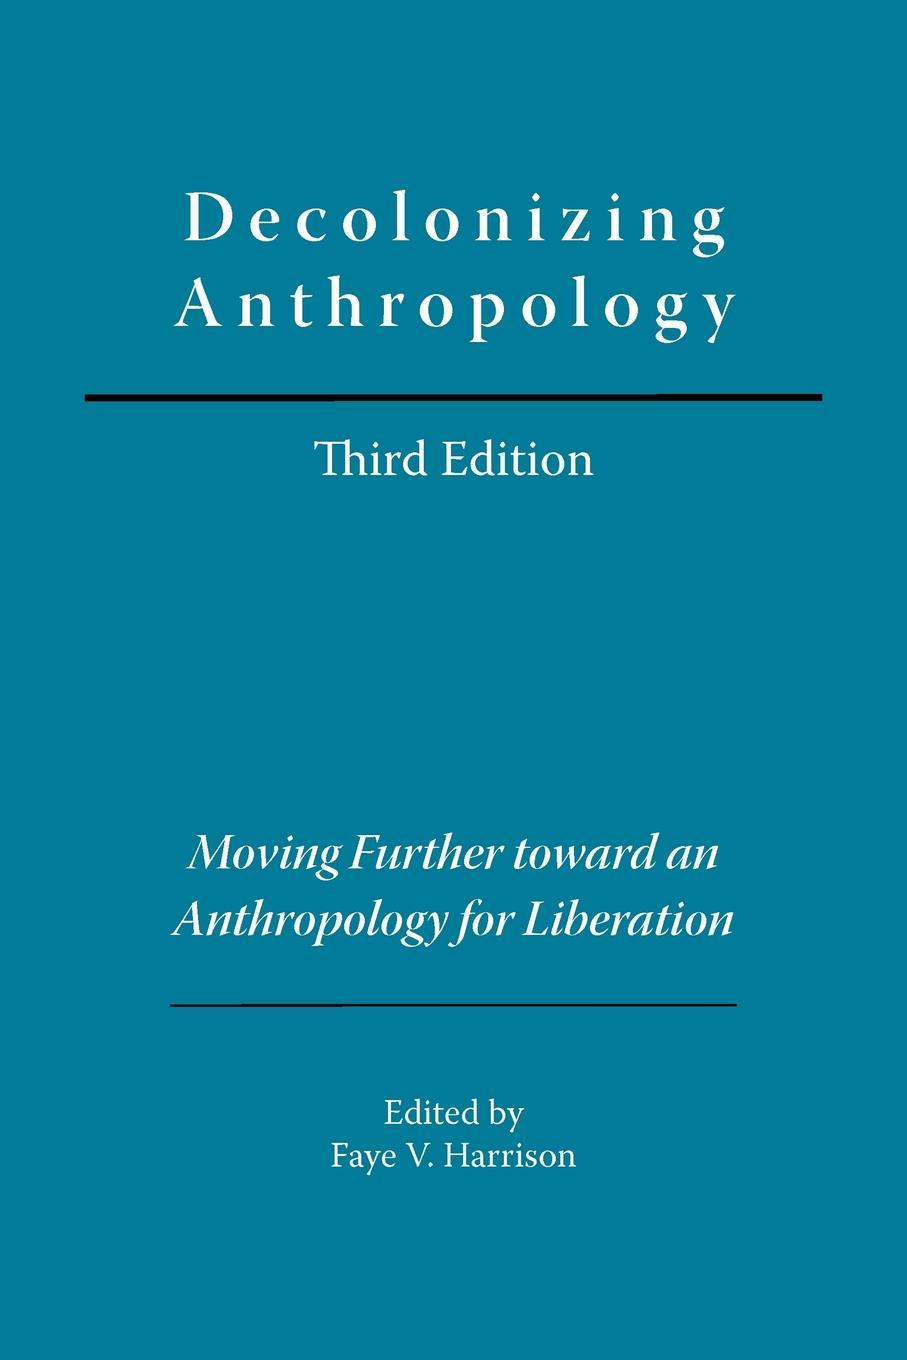 Decolonizing Anthropology, 3rd edition: Moving Further toward an Anthropology for Liberation